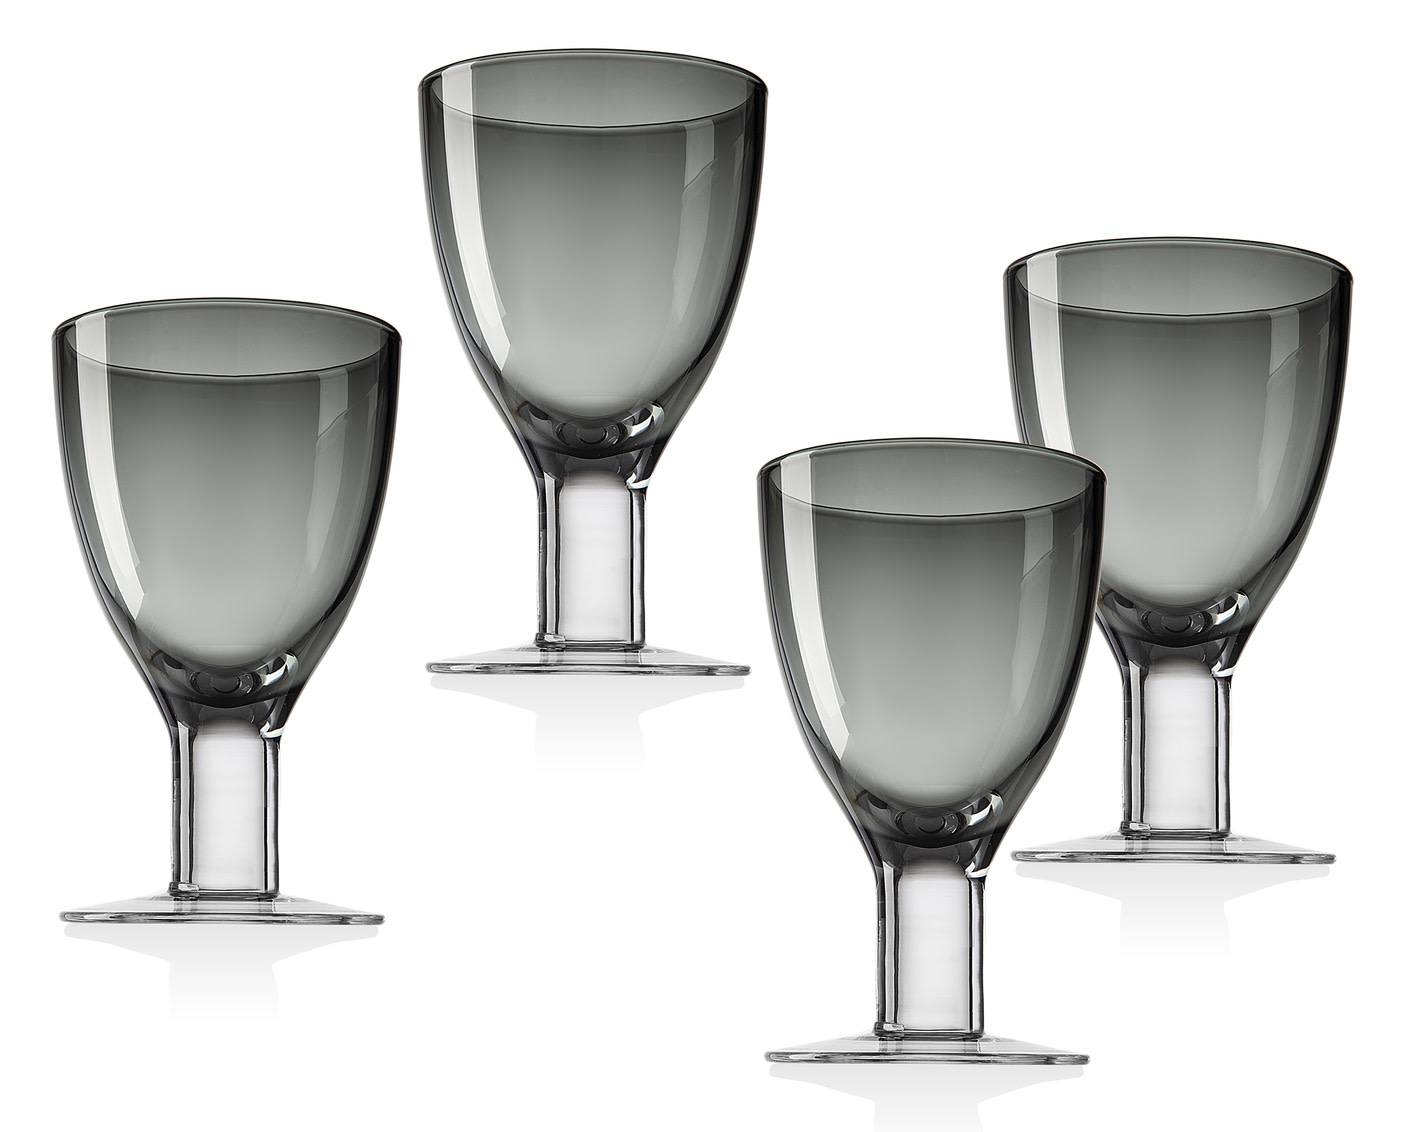 Galley Smoke Goblets S/4